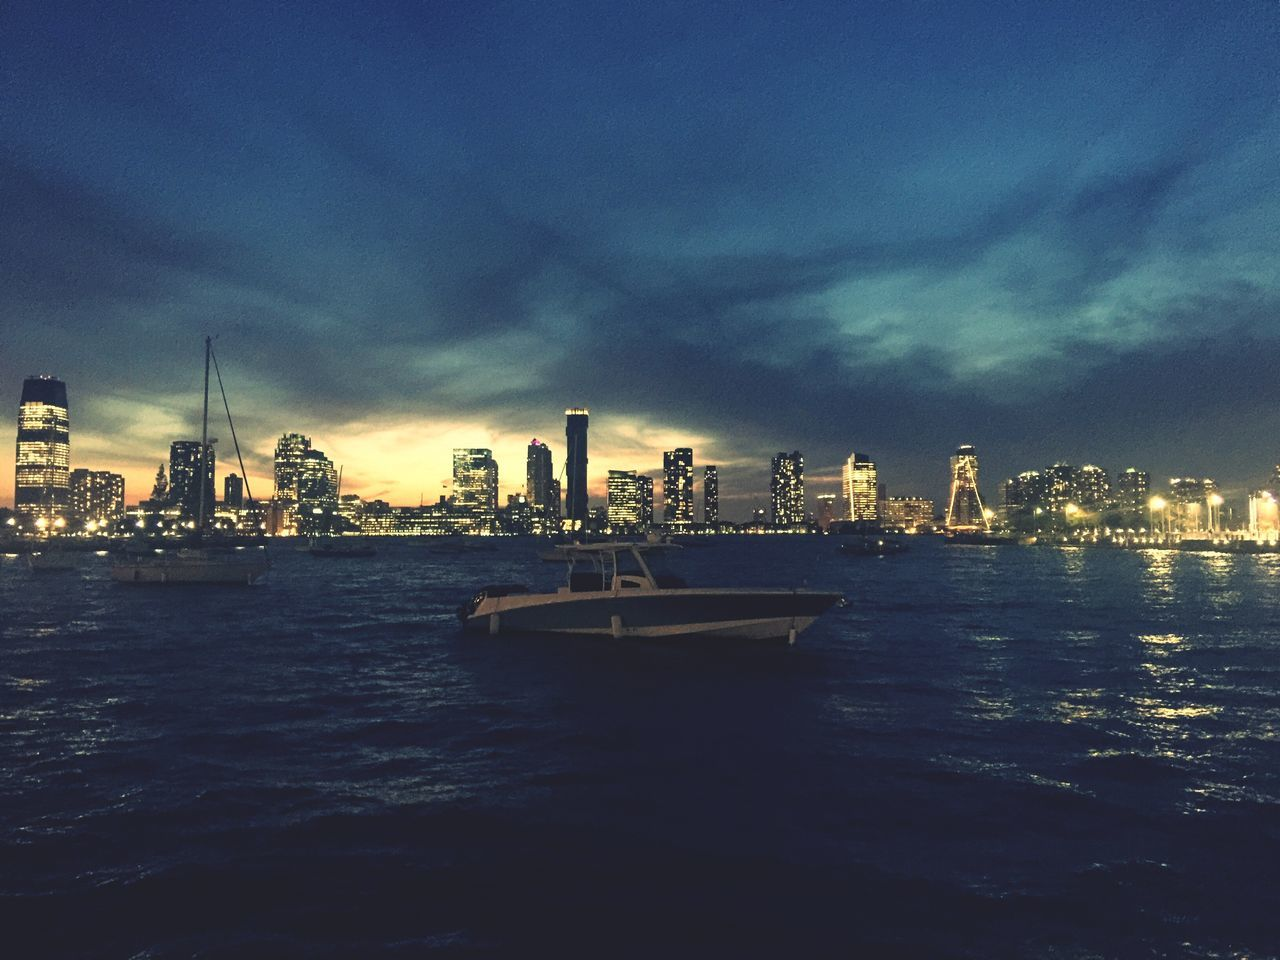 Adapted To The City Cityscape Water Sky Cloud - Sky Outdoors Waterfront Urban Skyline Nature Nautical Vessel Sunset Lowlight Newjearsey Blue Sky Blue Wave Solitude Wild EyeEmNewHere